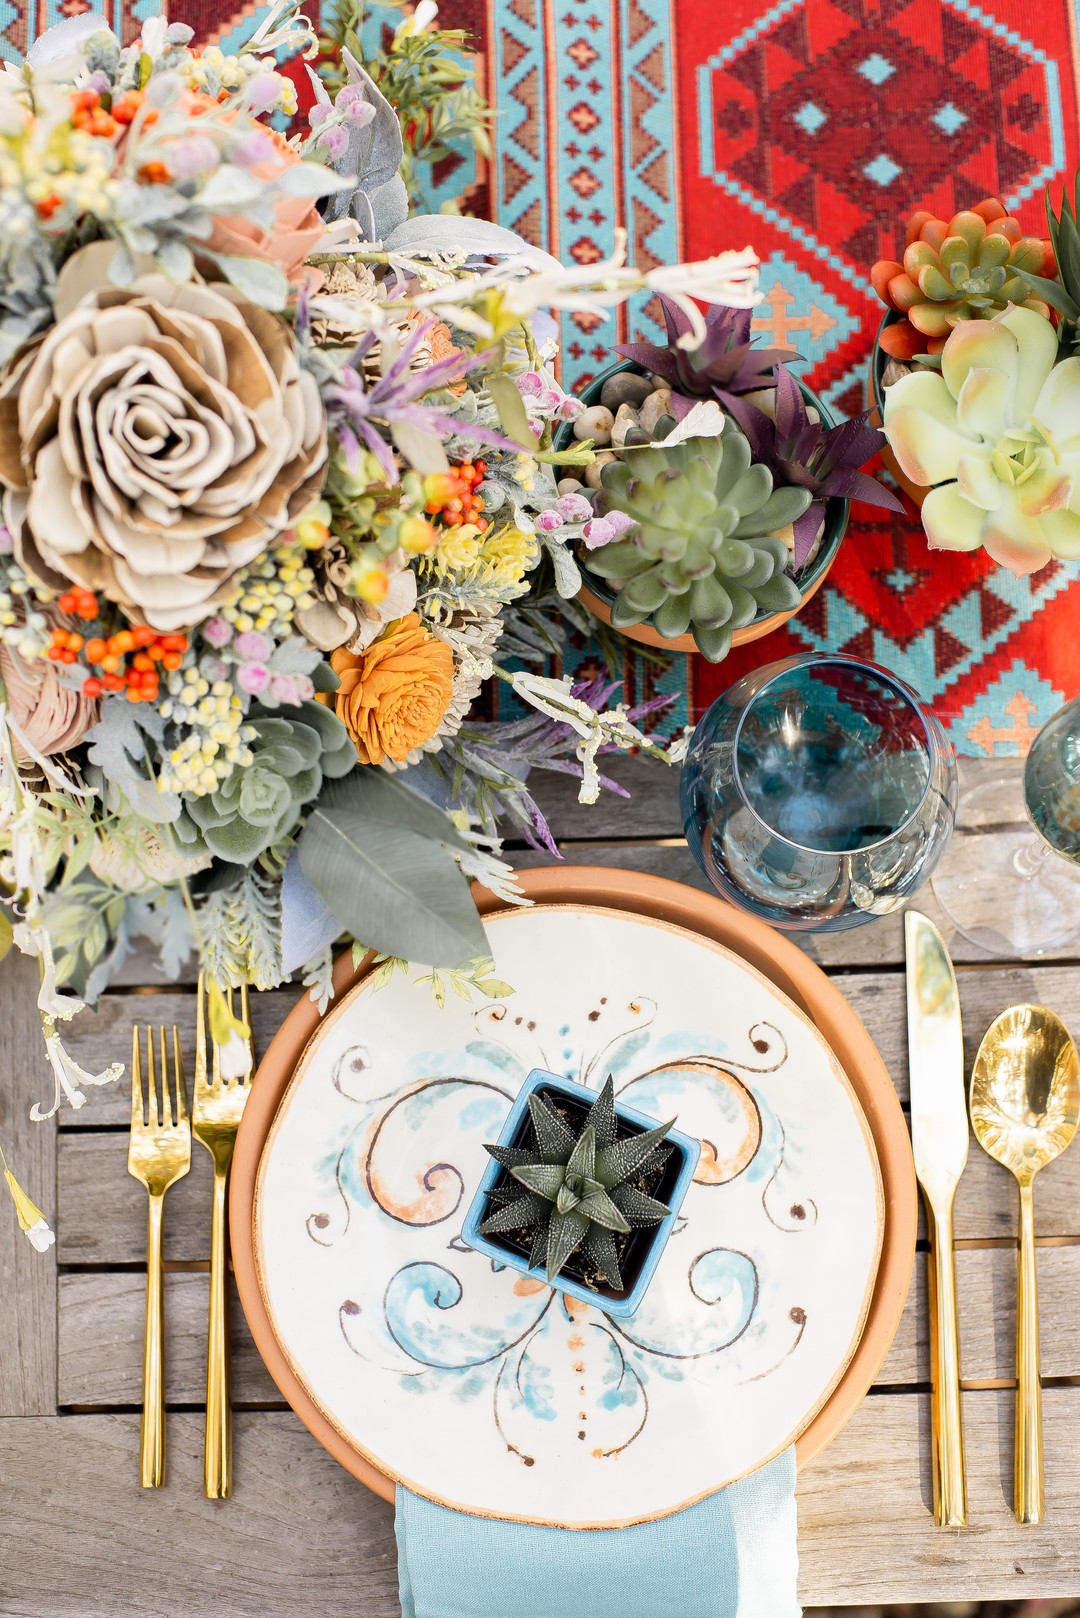 www.santabarbarawedding.com   Staci and Michael Photography   Montana de Oro State Park   EverAfter Wood Floral   Pier 1 Imports   Wedding table setting